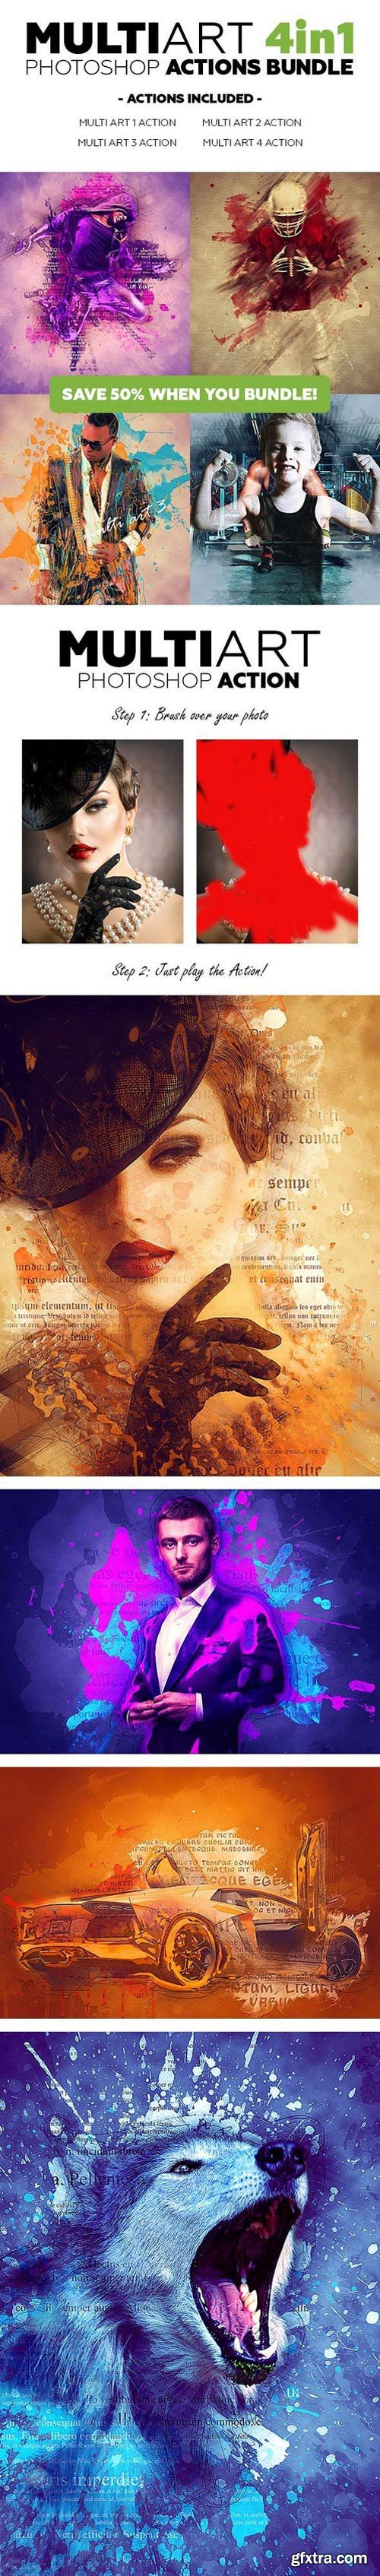 Graphicriver - Multiart 4in1 Photoshop Actions Bundle 21011936